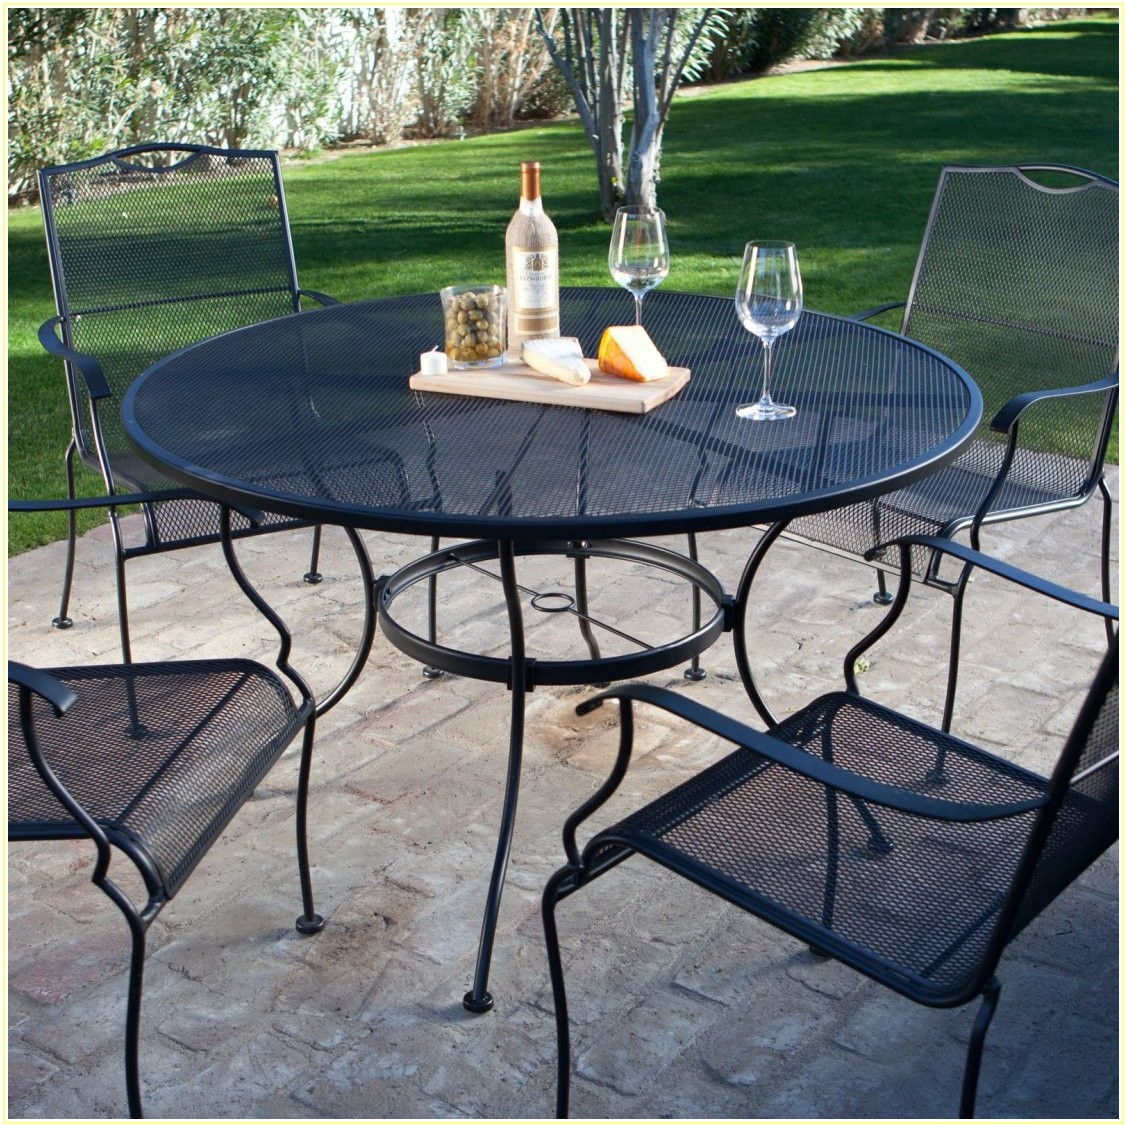 Patio Wrought Iron Table And Chairs